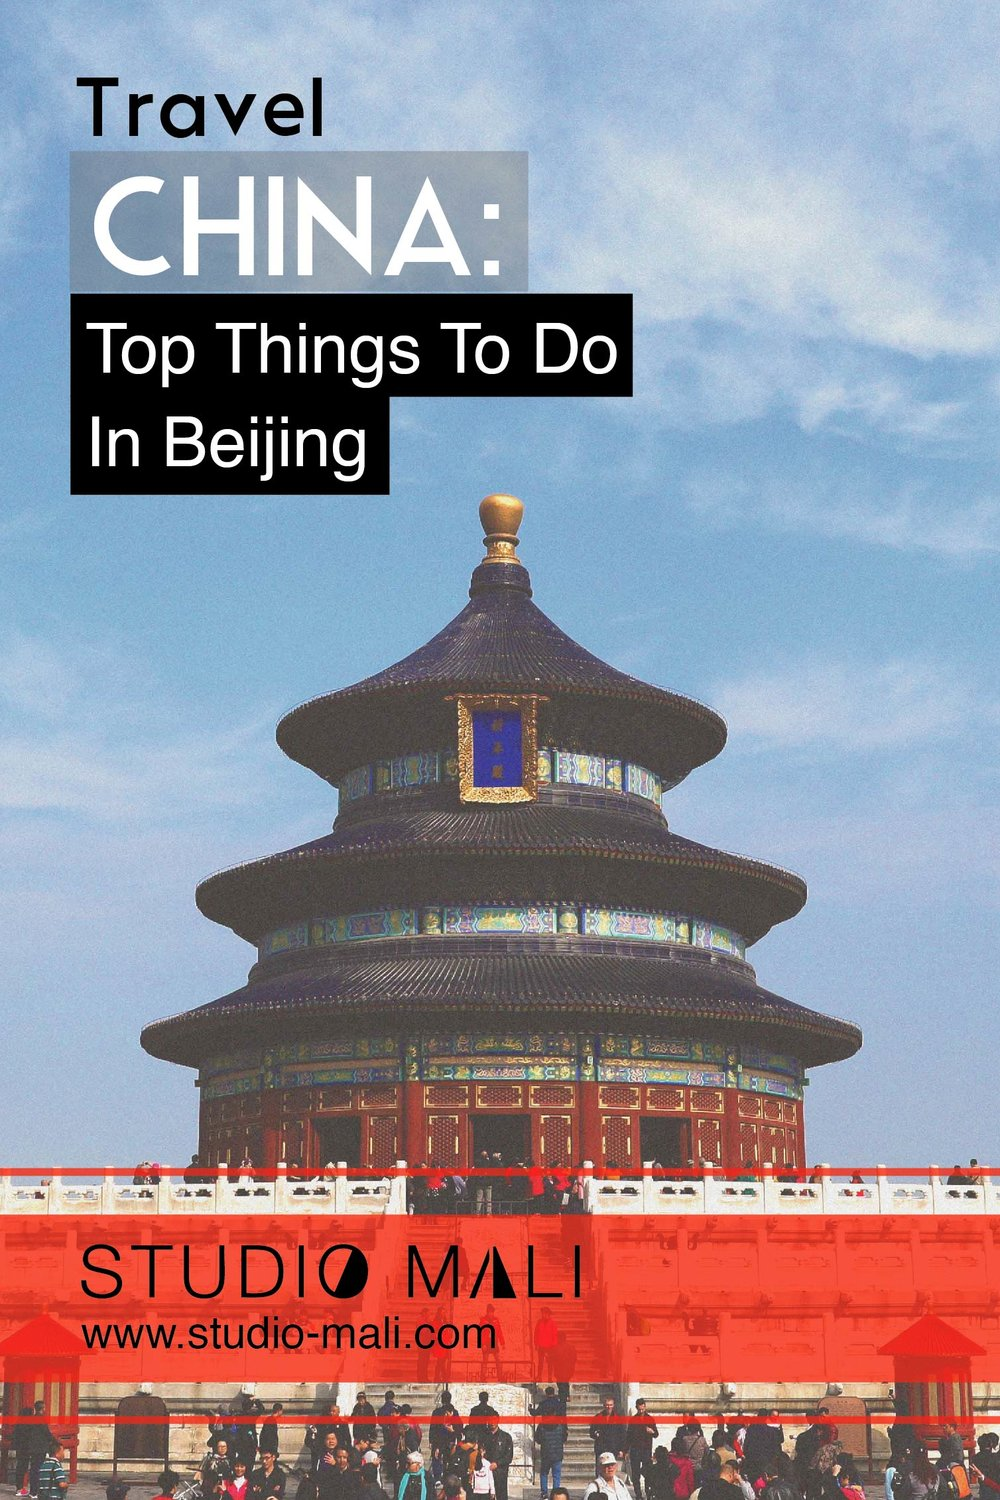 Top Things To Do In Beijing, by Studio Mali